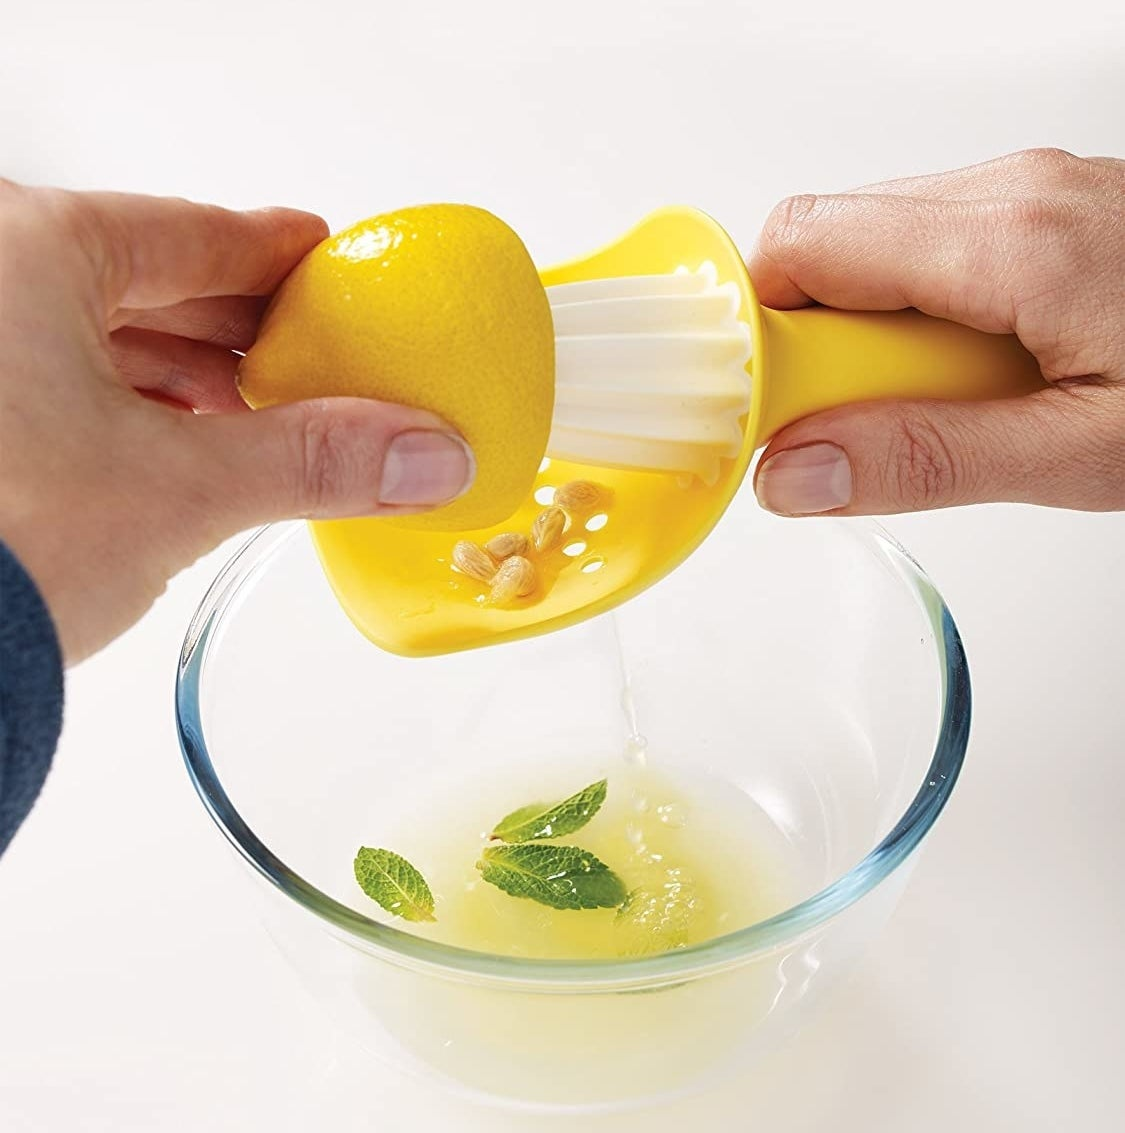 A person juices a lemon over a bowl where a few seeds are caught in the colander attachment